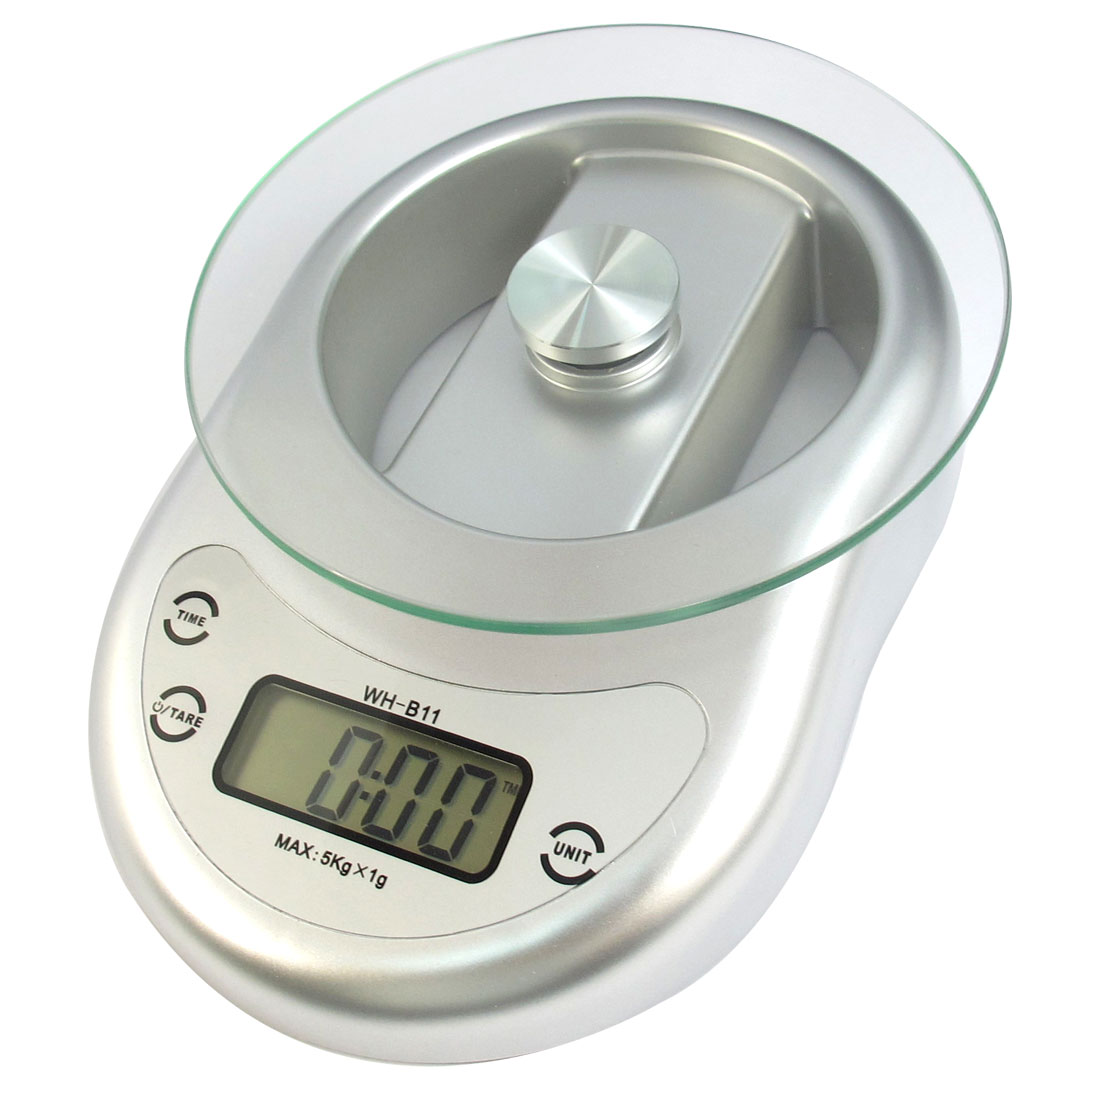 5Kg x 1g Kitchen Digital Electronic Weight Scale Kg oz lb g Silver Tone